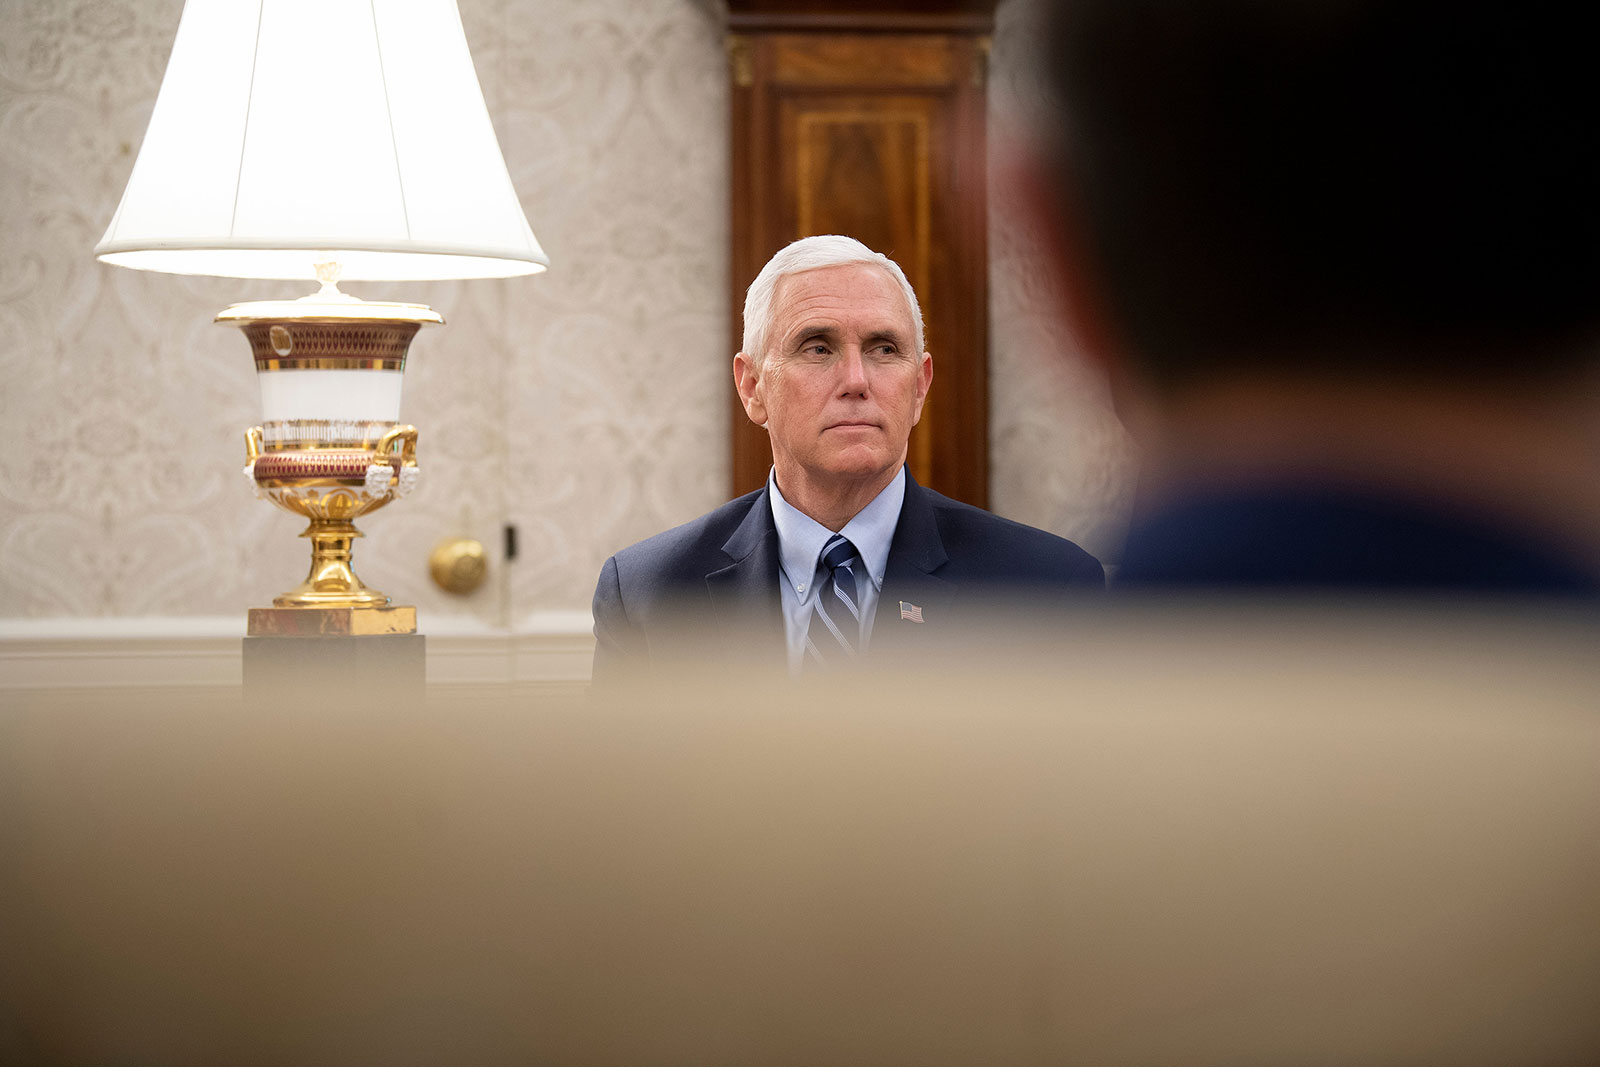 US Vice President Mike Pence plans to be at the White House on Monday, aPence spokesman said on Sunday.